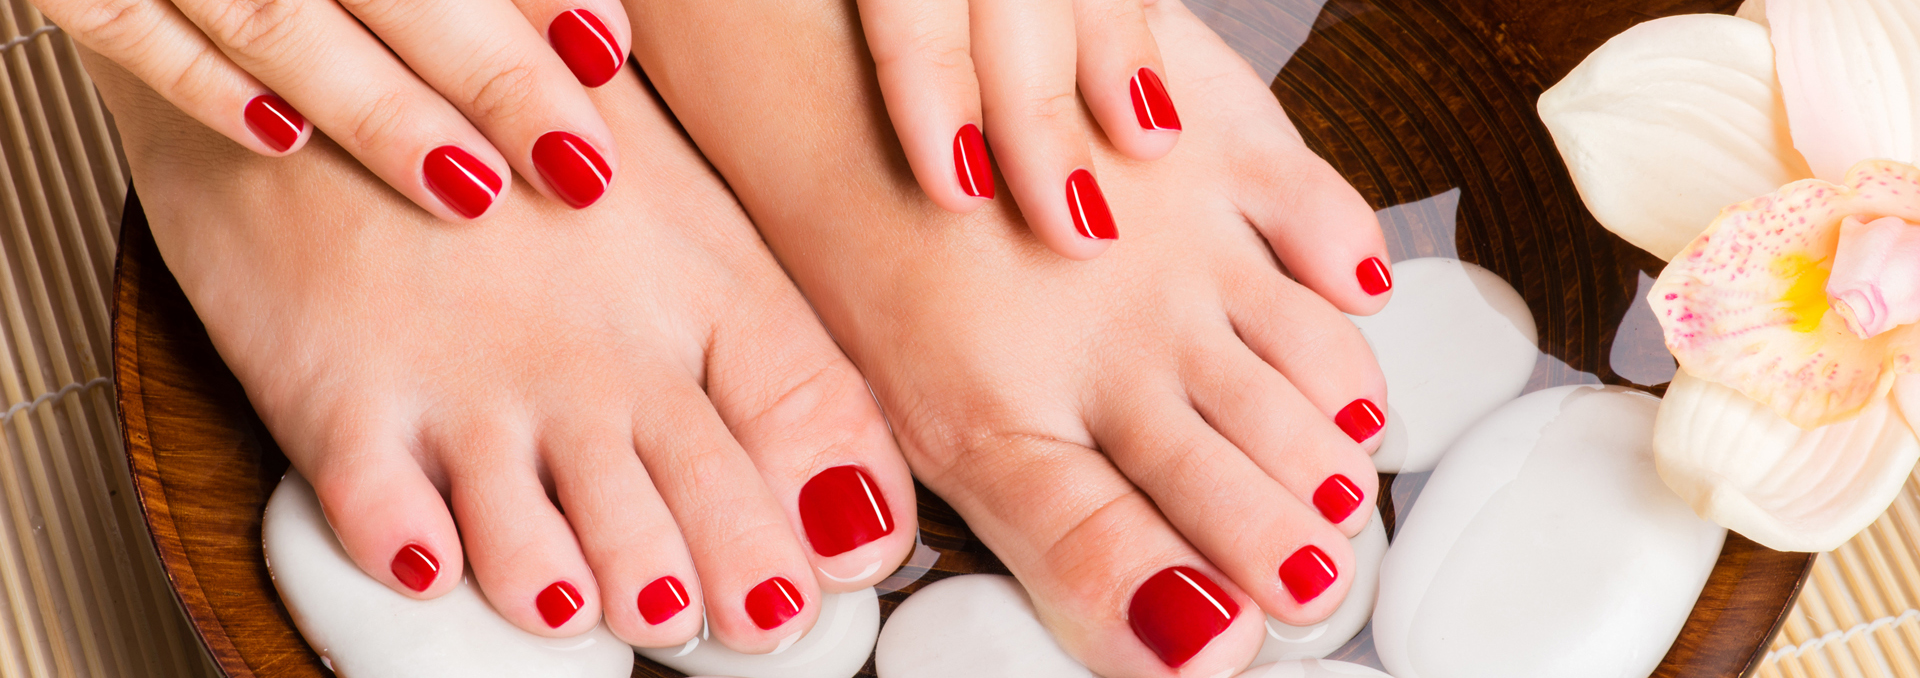 Luxury Nail Bar - Nail salon in Portland, Oregon 97217